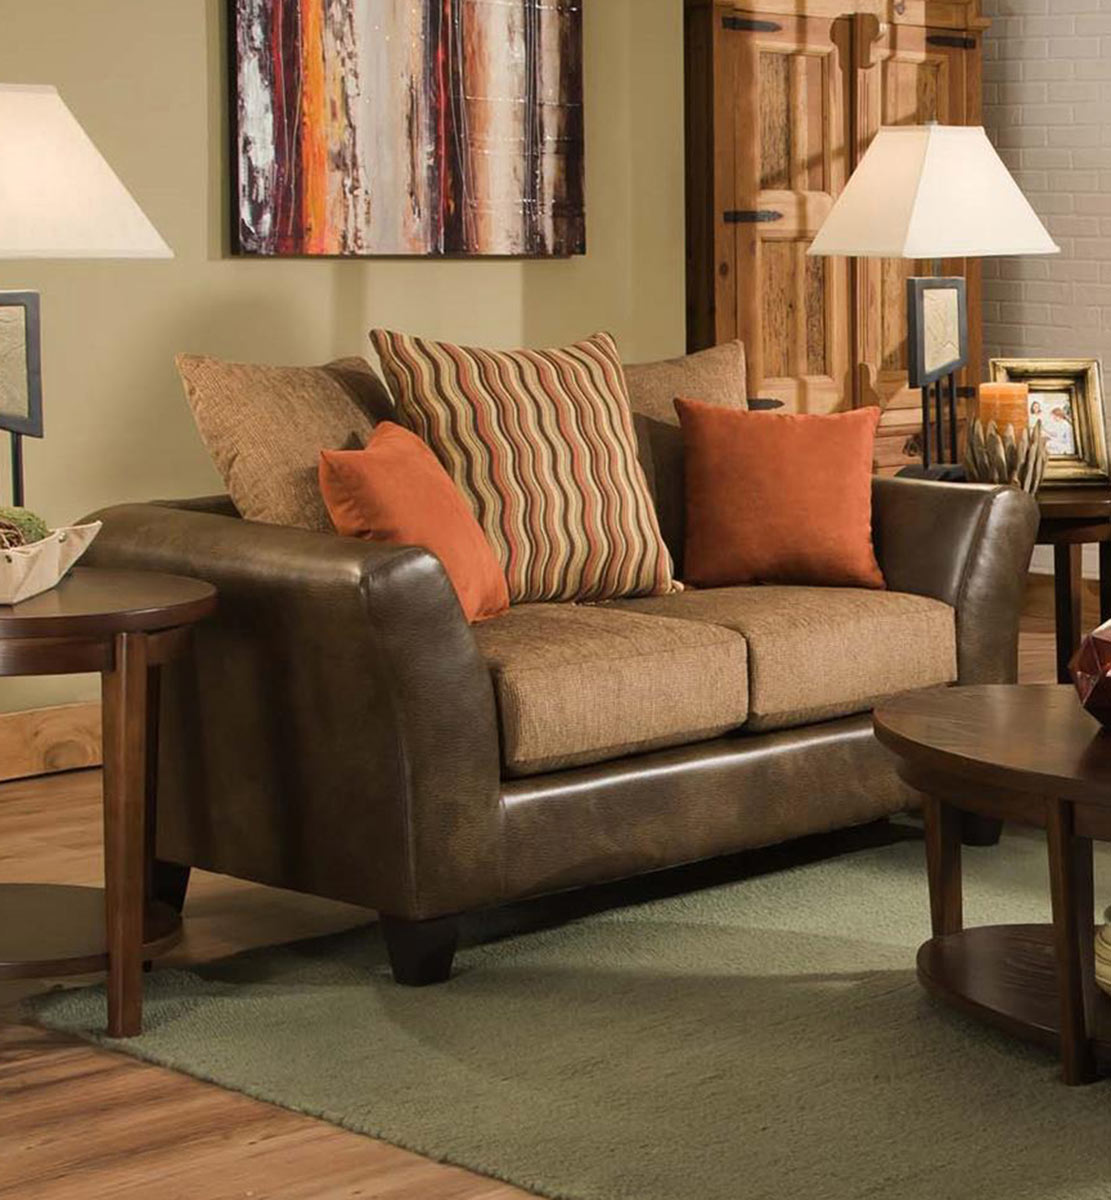 Chelsea Home Patch Loveseat - Saddle